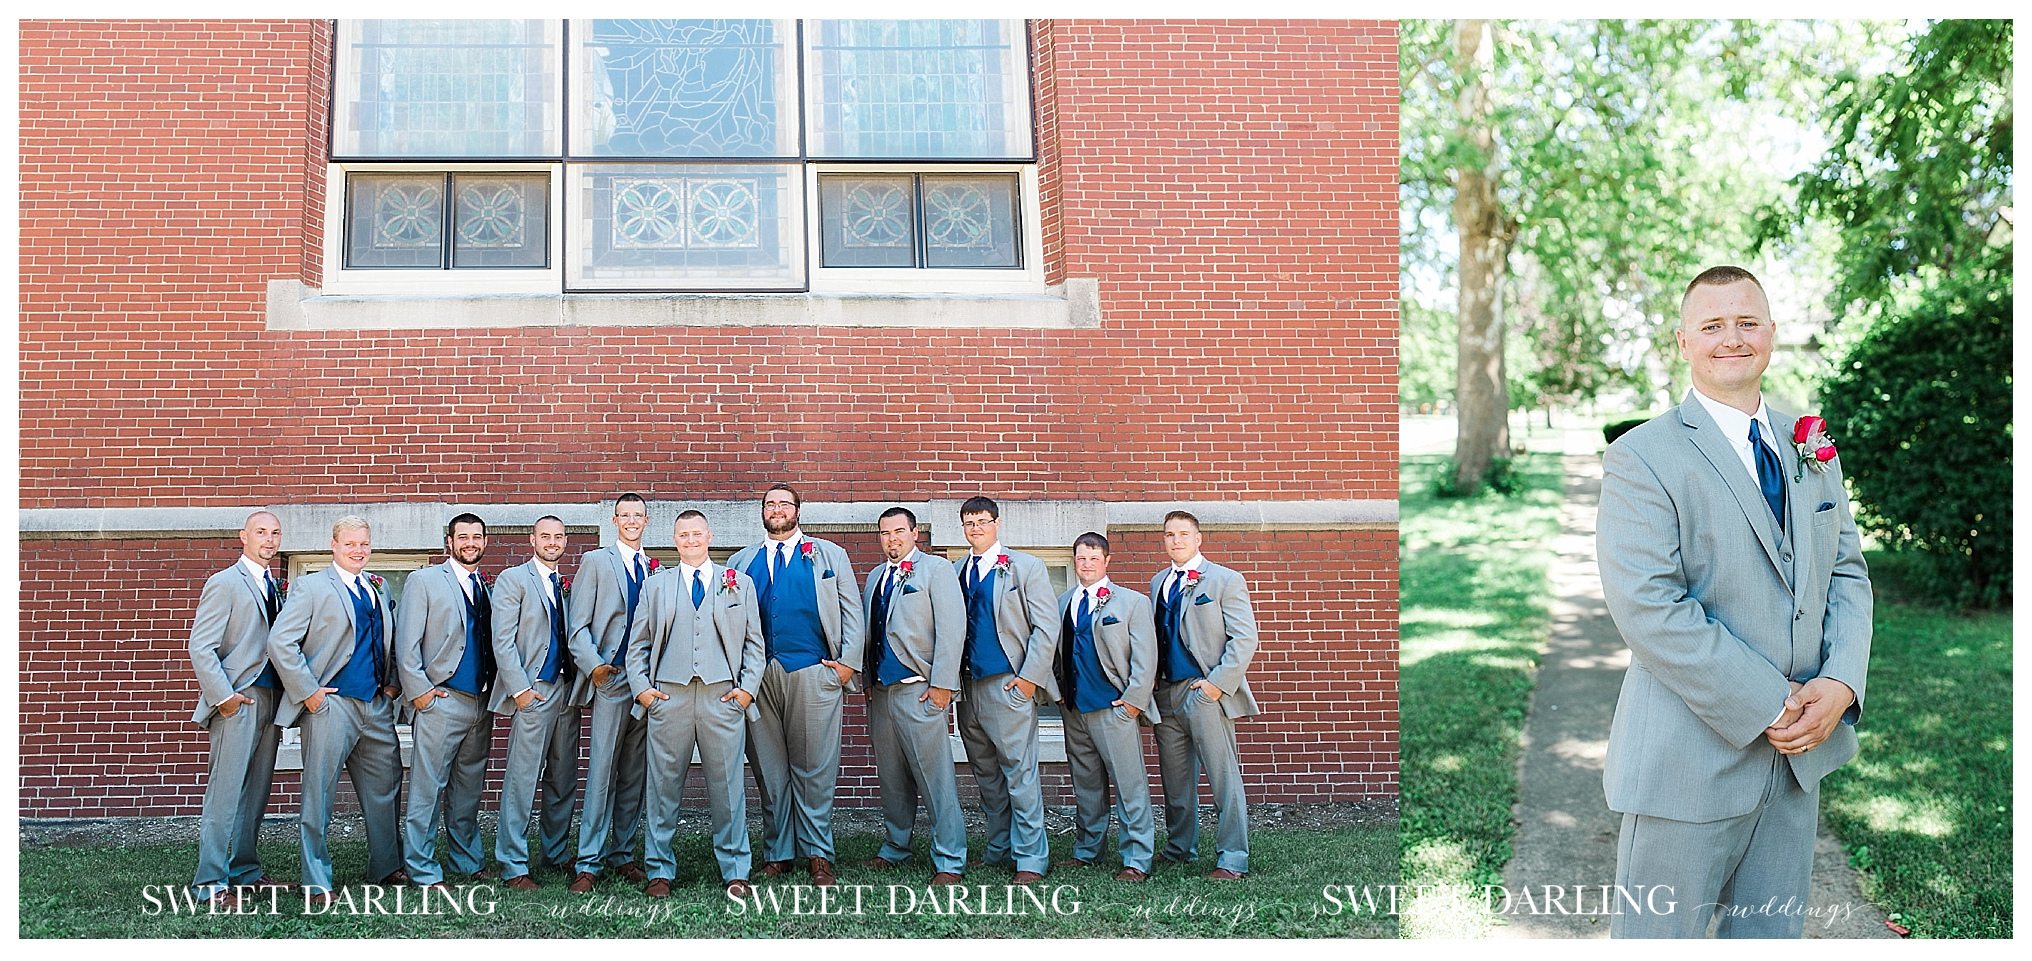 champaign-county-royal-paxton-illinois-sweet-darling-weddings-photography-red-navy-roses_1400.jpg